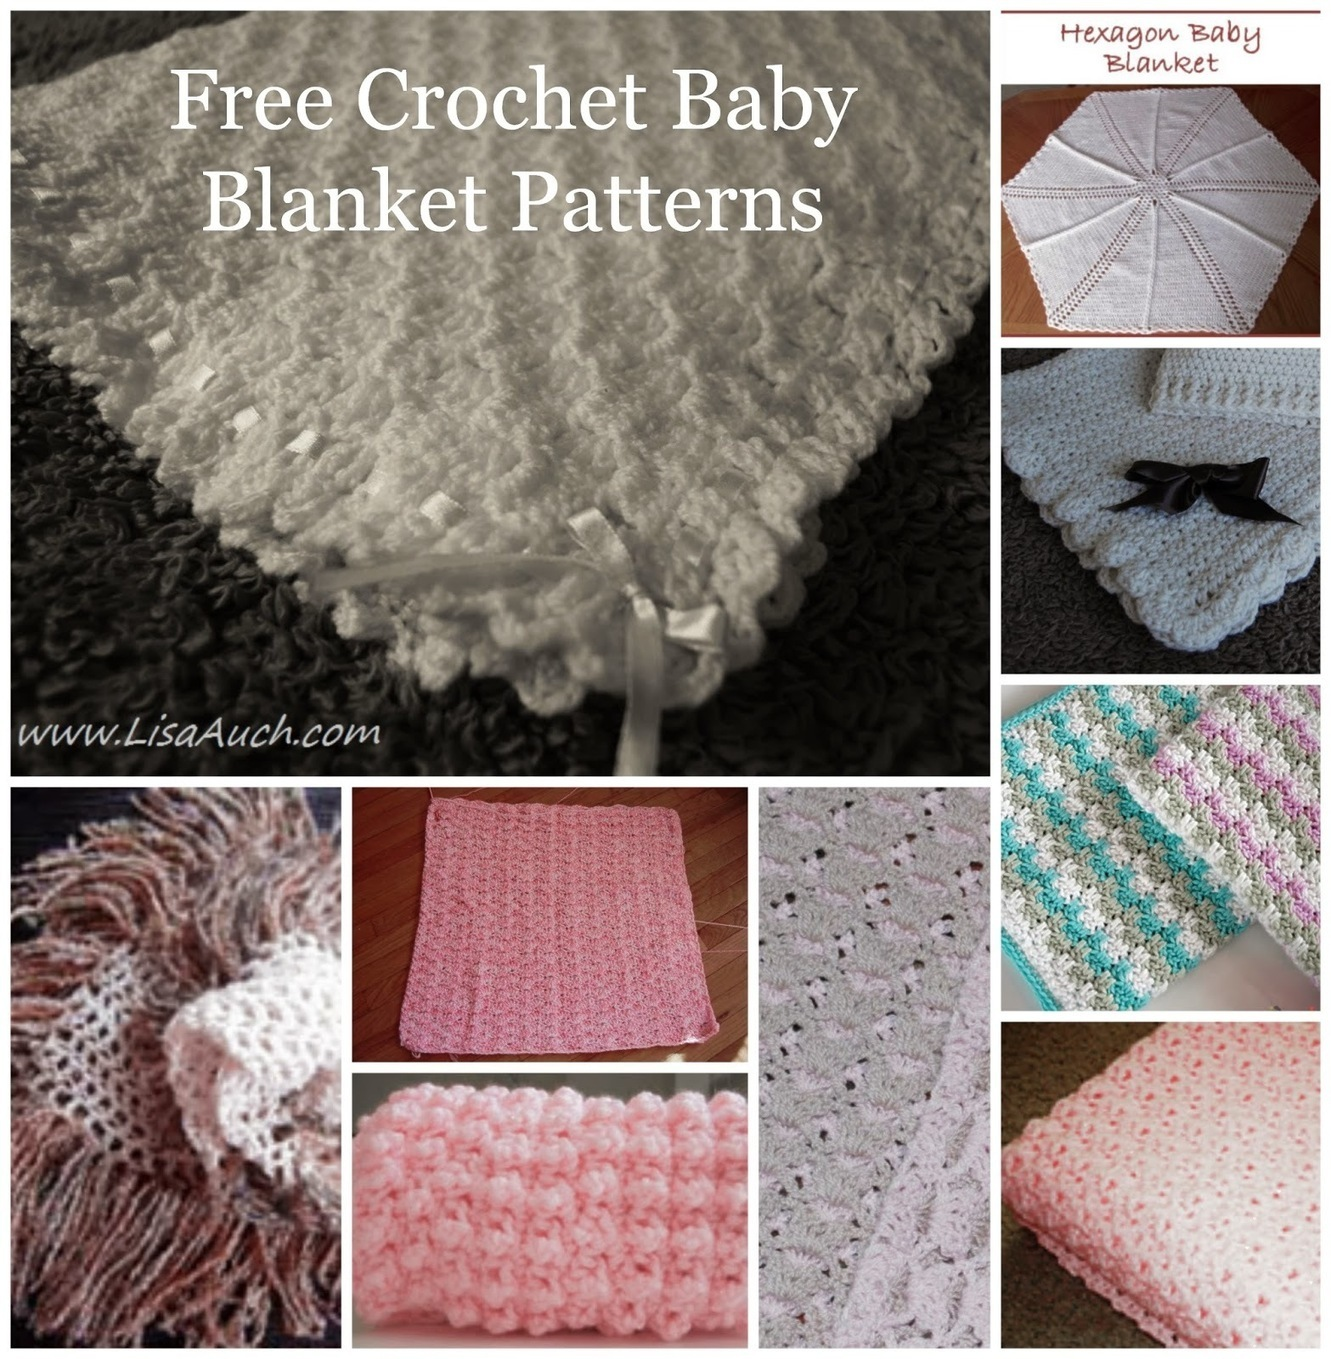 Free Crochet Patterns And Designs By Lisaauch : Free Crochet Patterns and Designs by LisaAuch